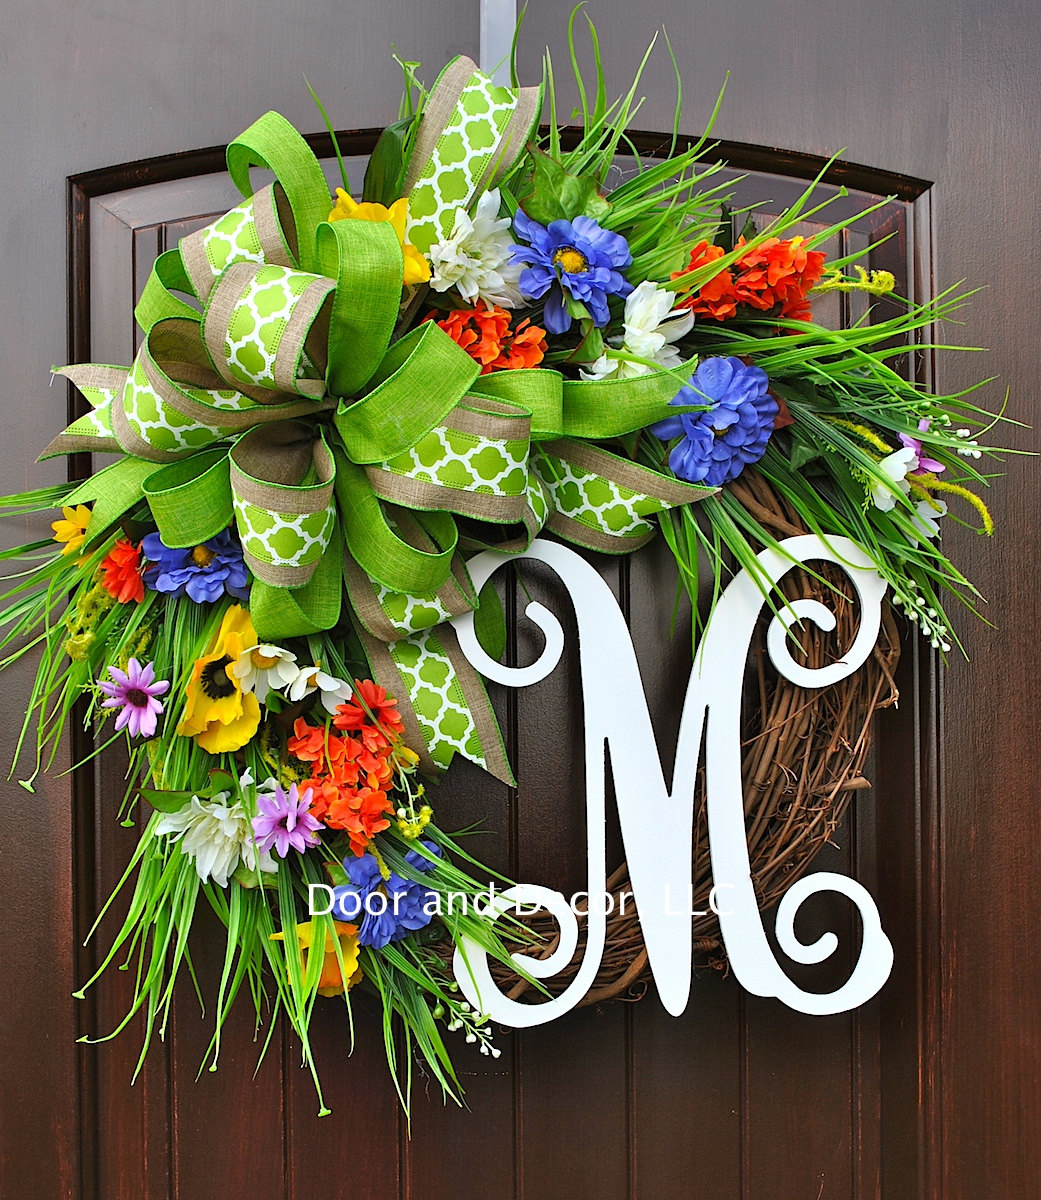 18 Whimsy Handmade Summer Wreath Designs For A Fun Welcome To Your